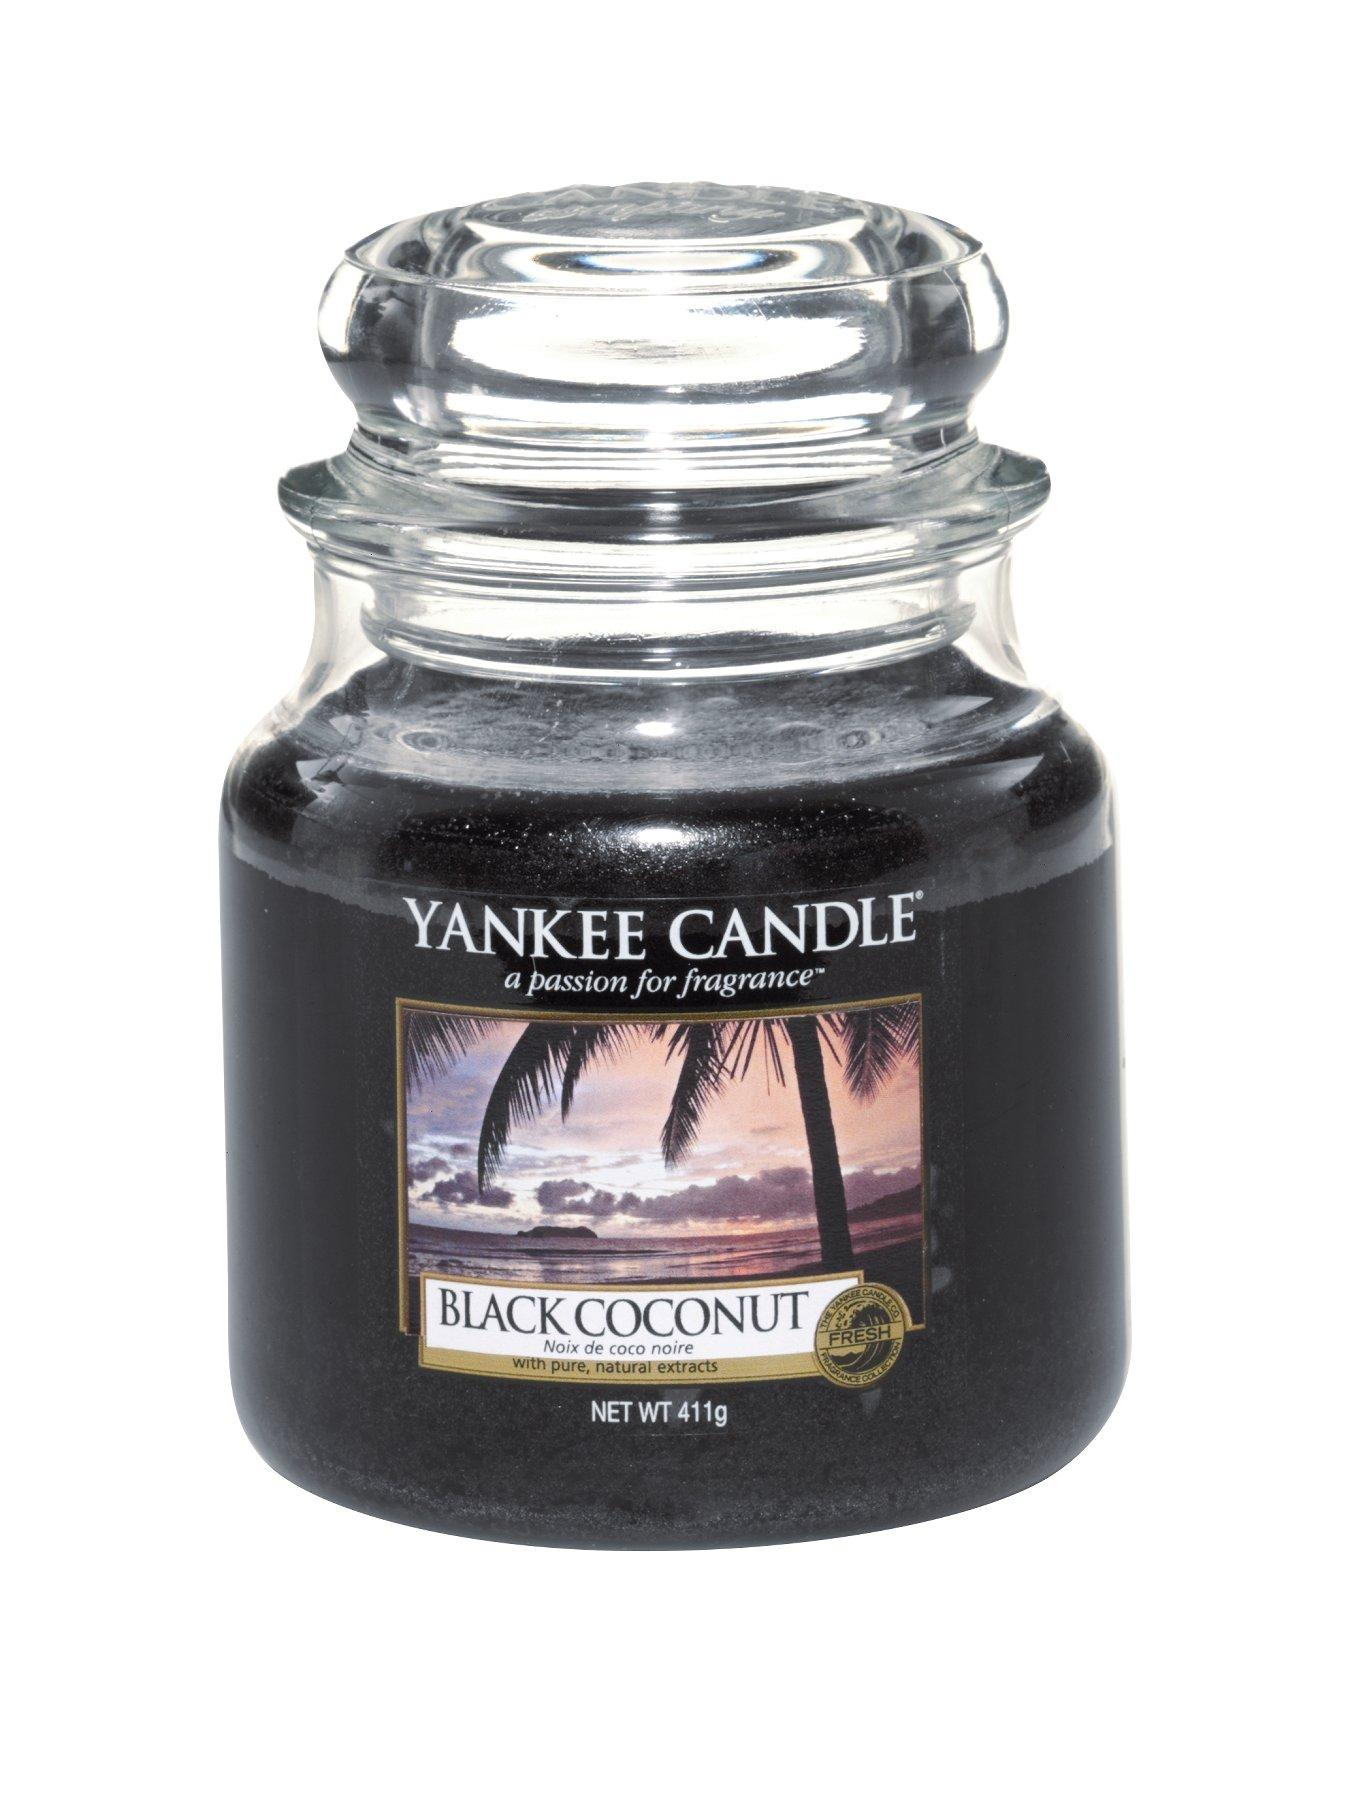 Yankee Candle Medium Jar - Black Coconut.